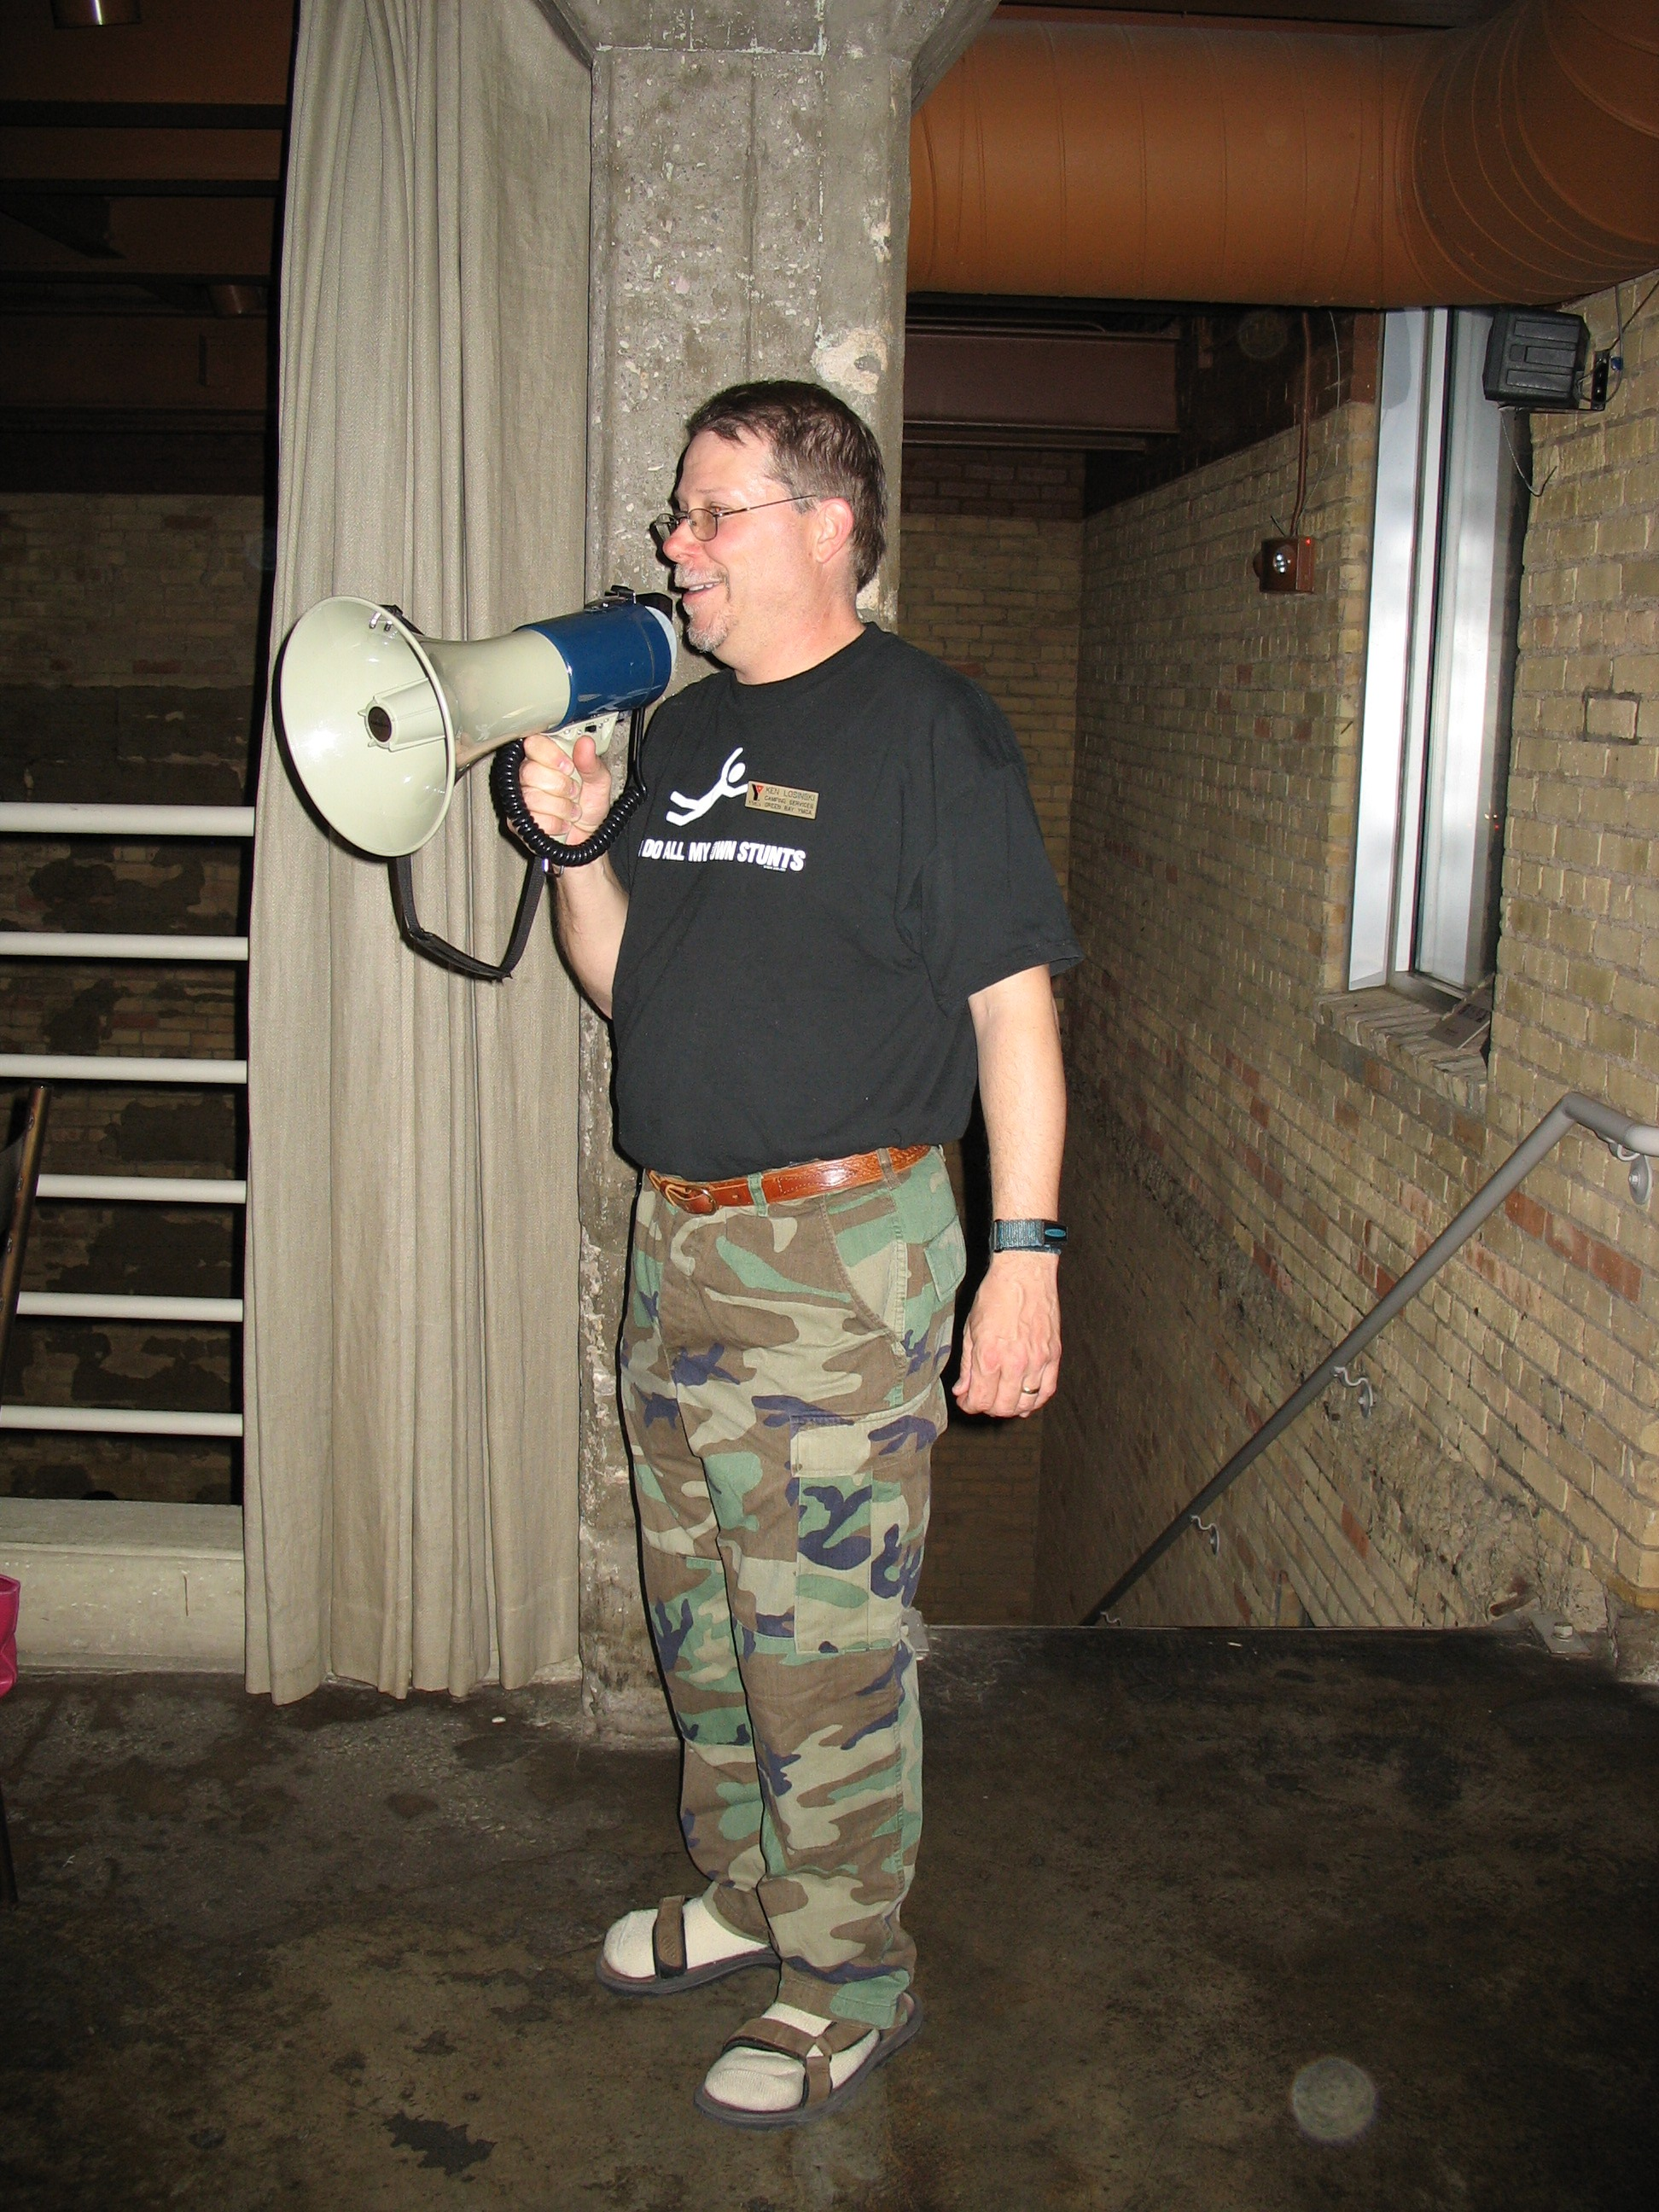 Camp{ }U-Nah-Li-Ya Director Ken Losinski using a megaphone to get his message across (Courtesy Ken Losinski)